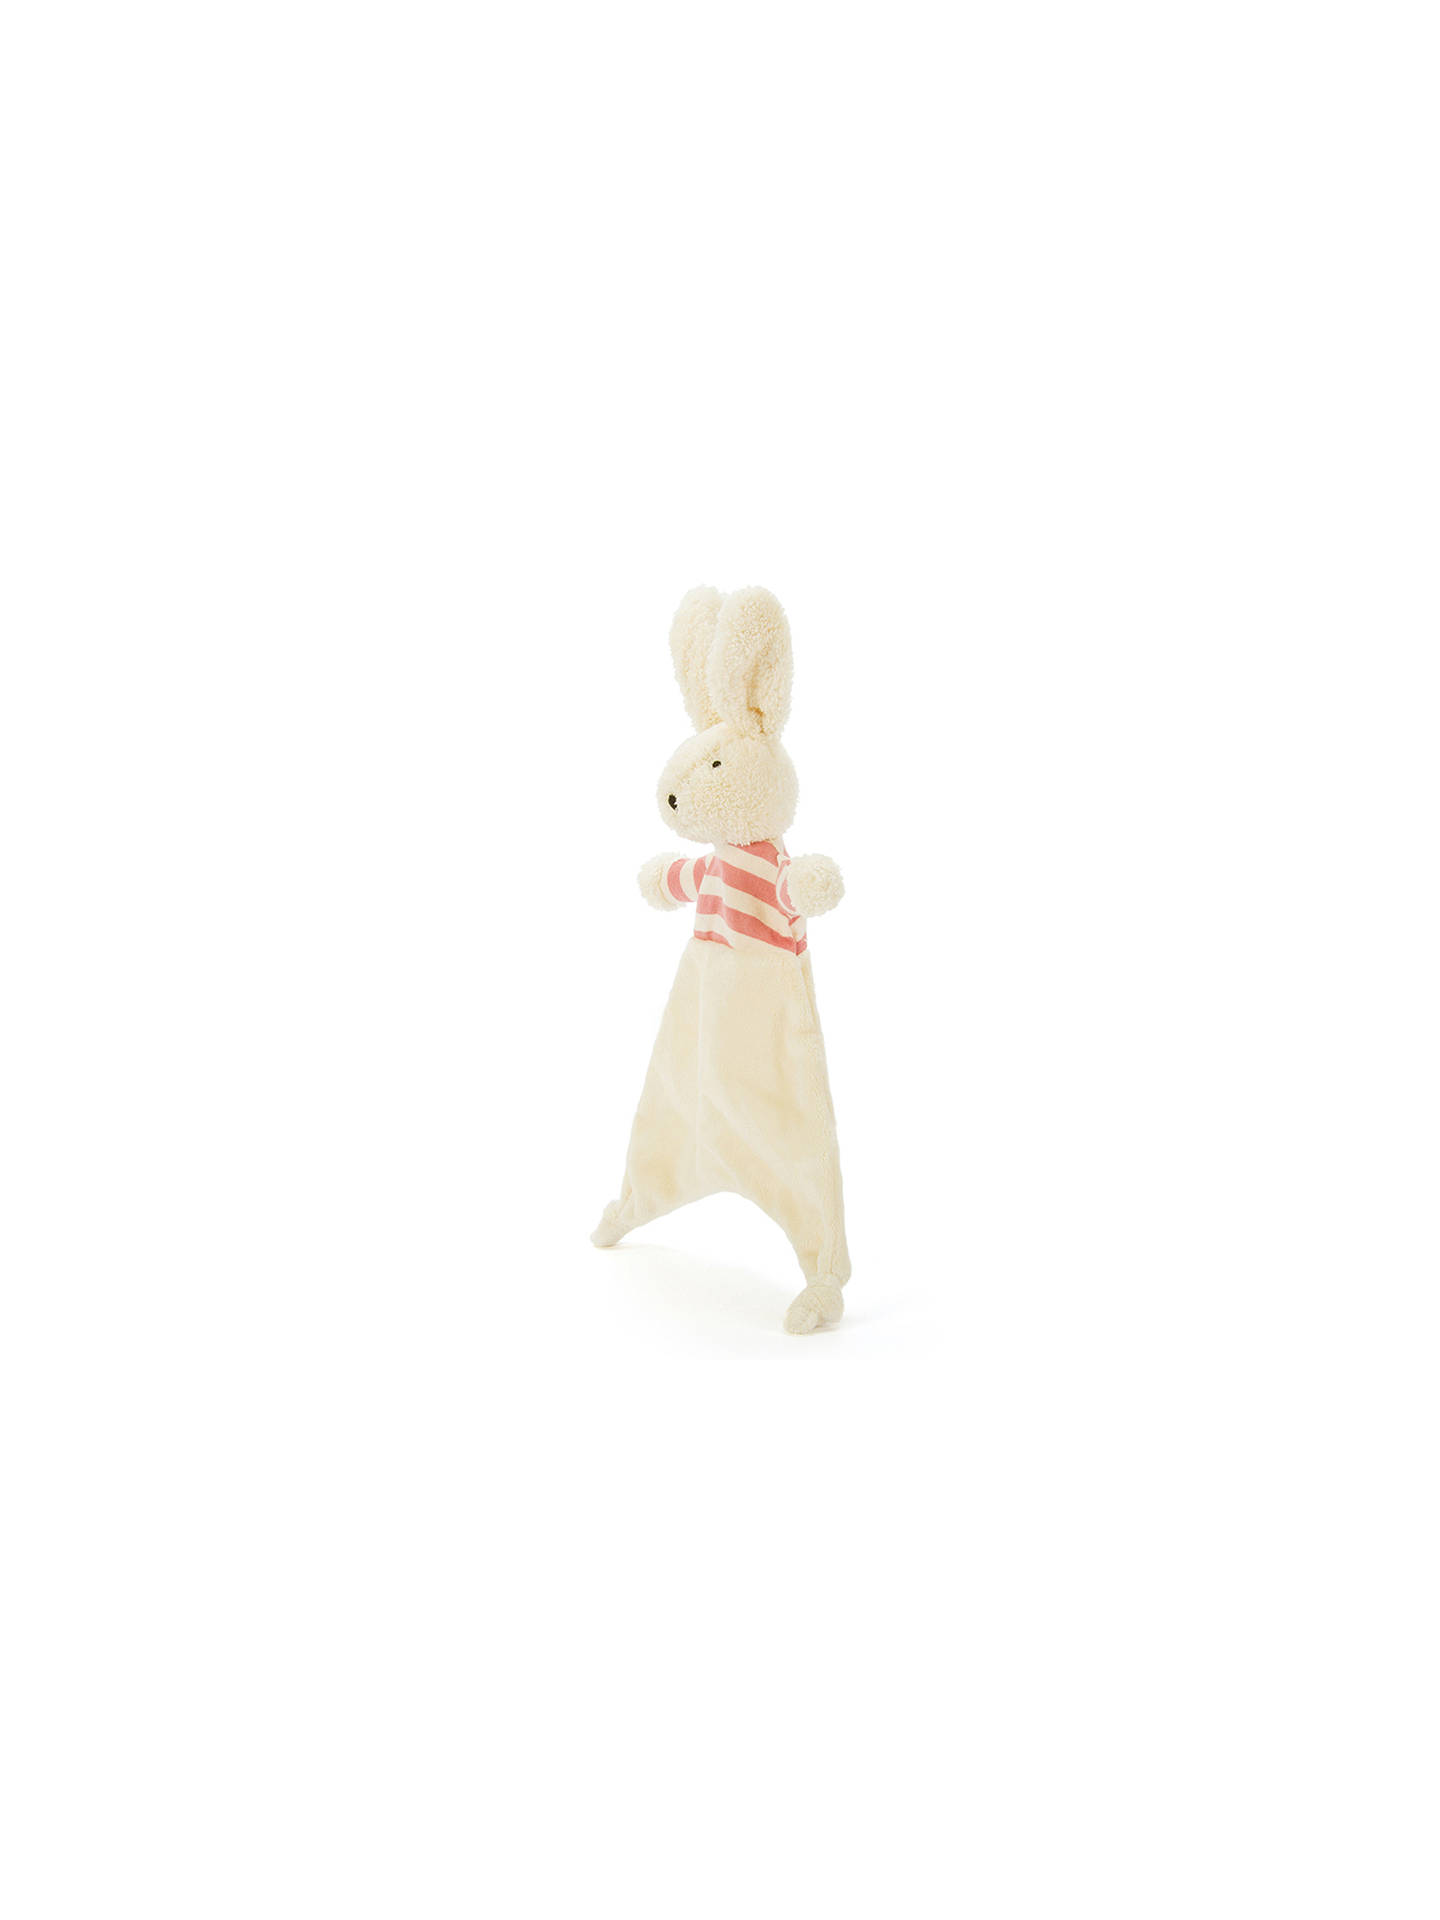 BuyJellycat Bredita Bunny Soother Soft Toy Online at johnlewis.com